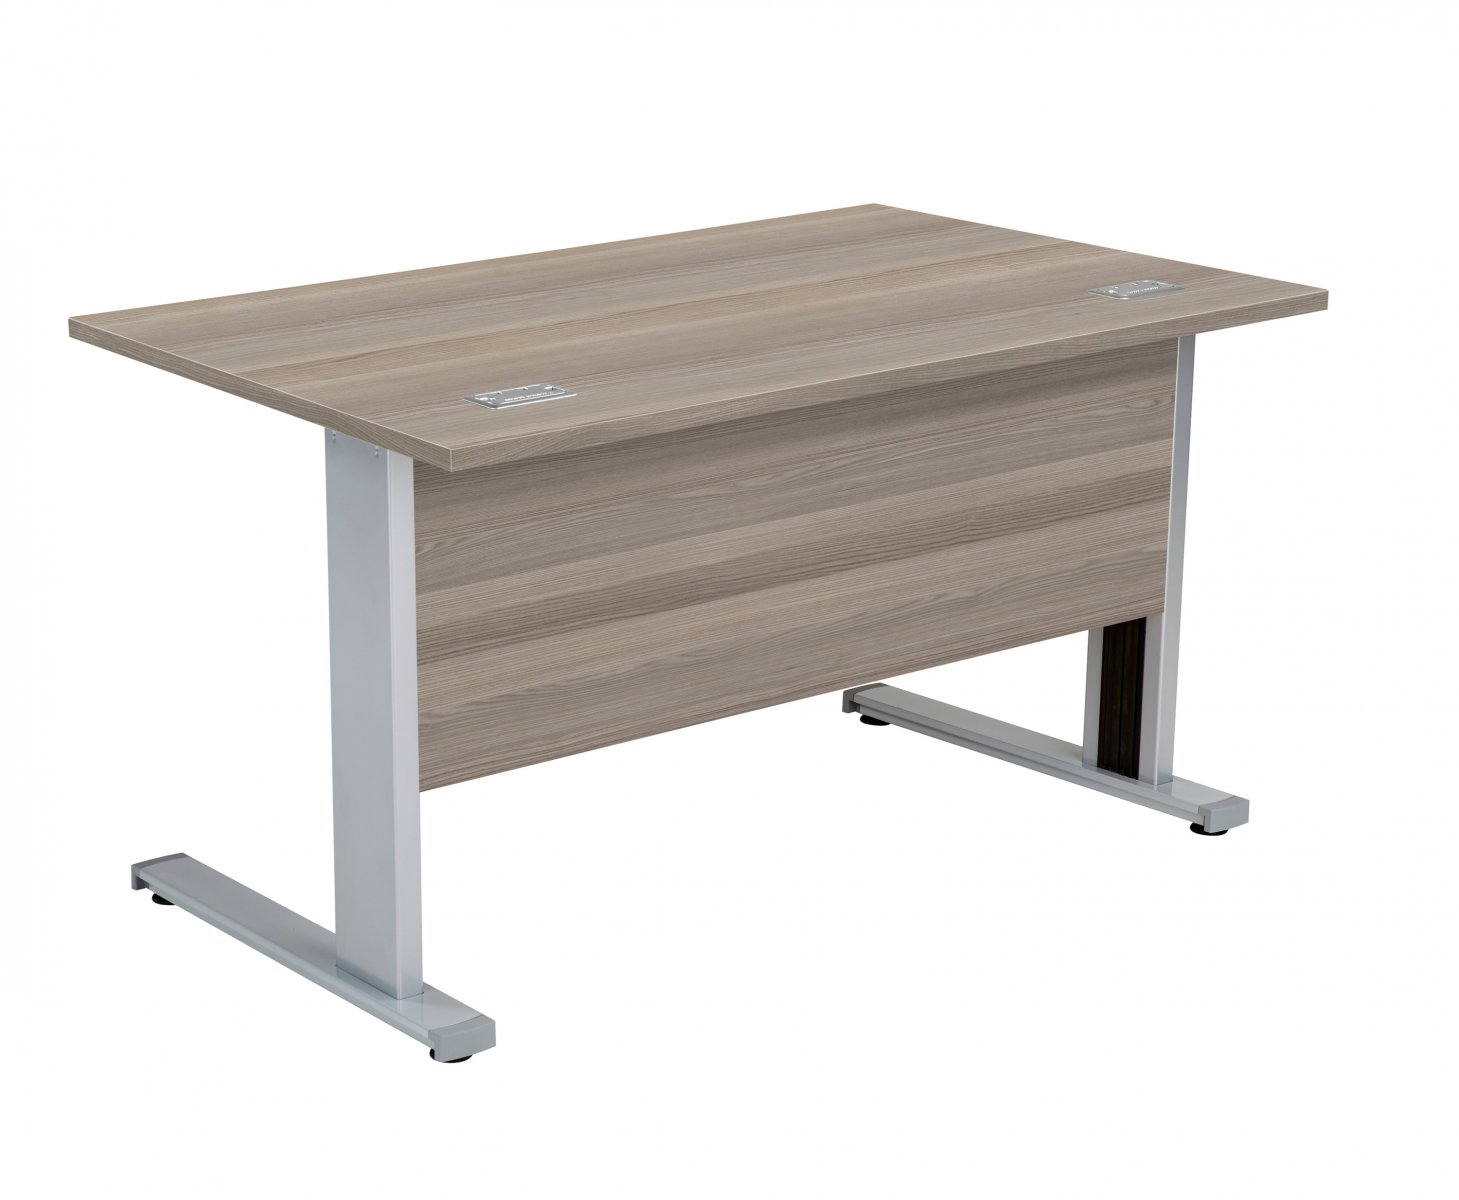 Fraction Deluxe Rectangular 140 Desk - Grey Oak